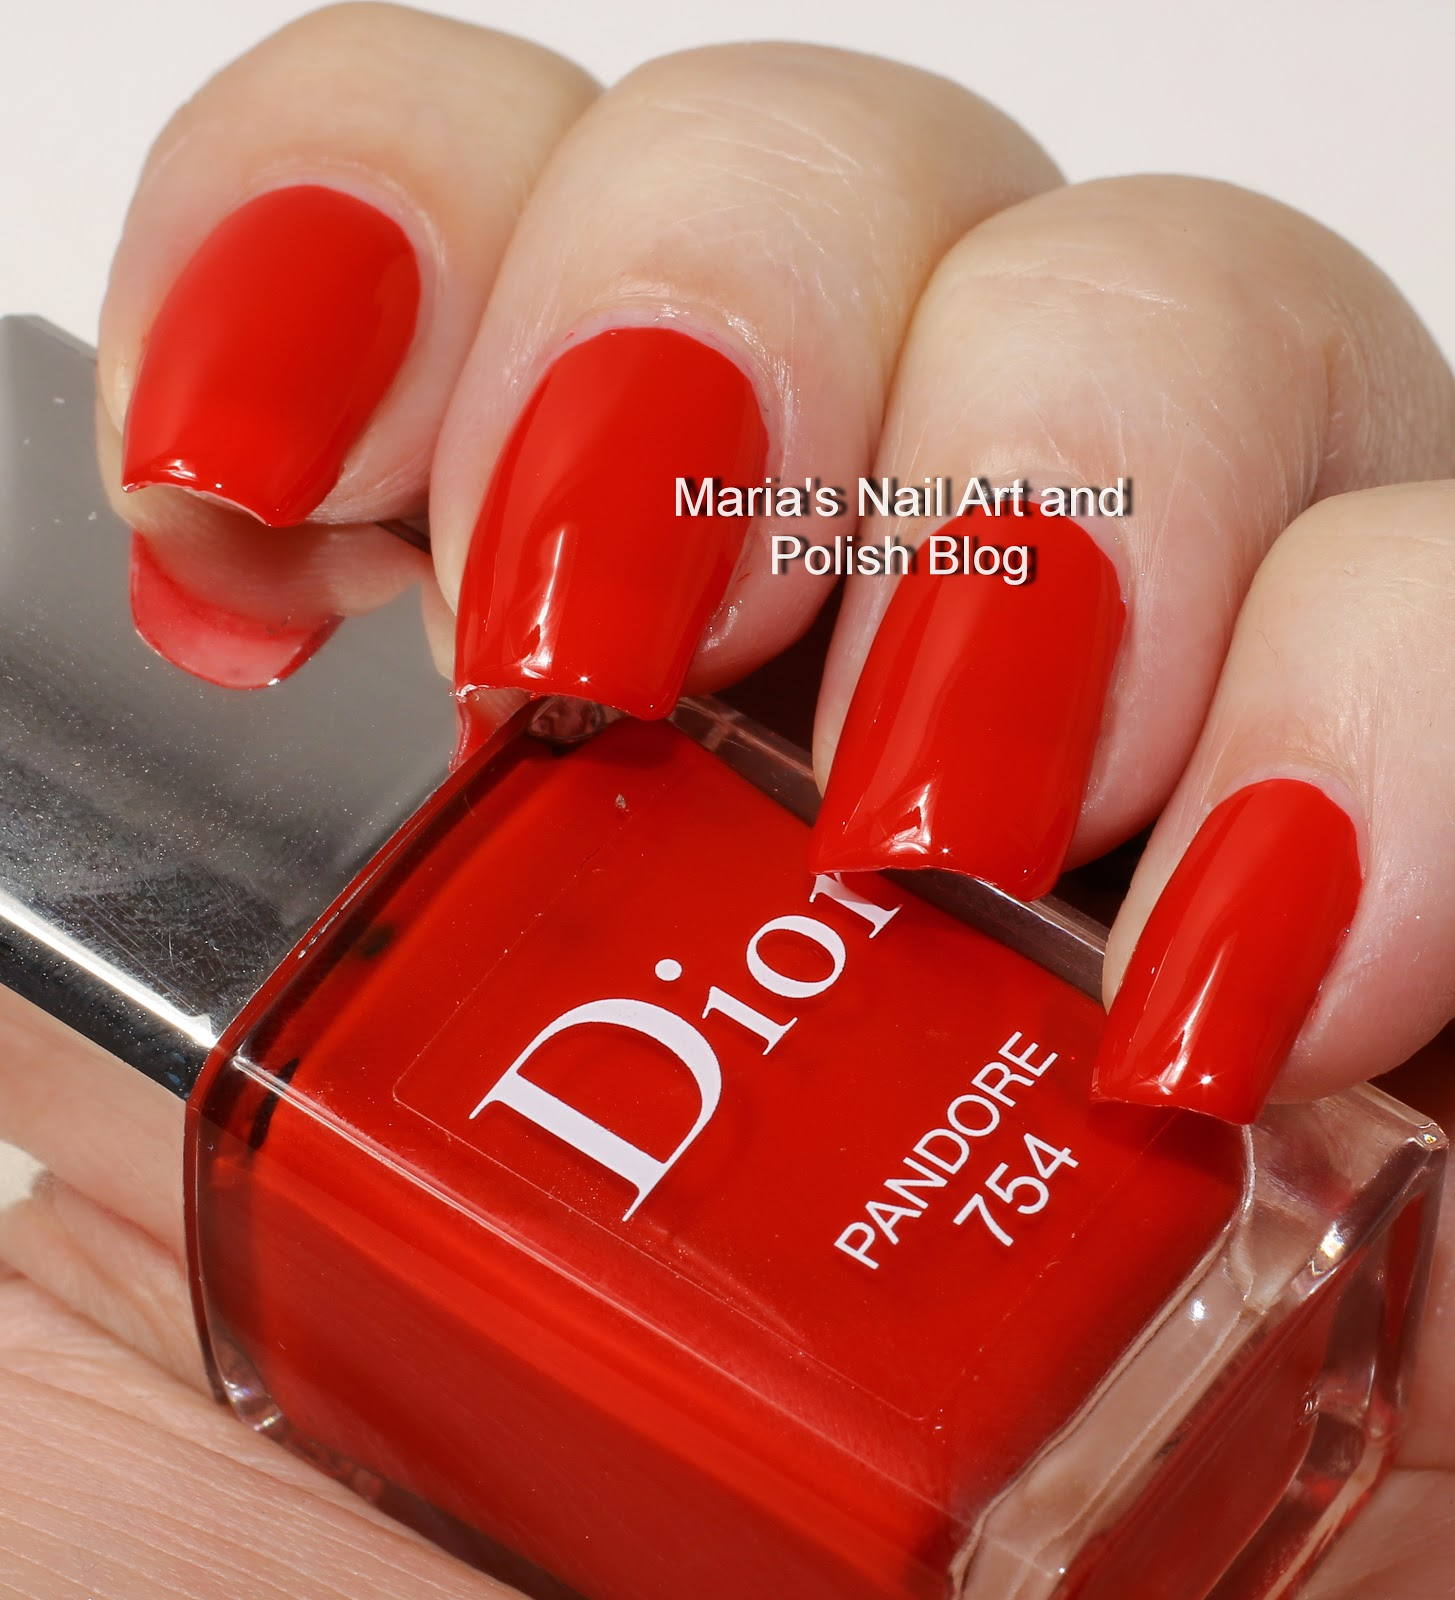 Marias Nail Art And Polish Blog Flushed With Stripes And: Marias Nail Art And Polish Blog: Dior Pandore 754 Swatches